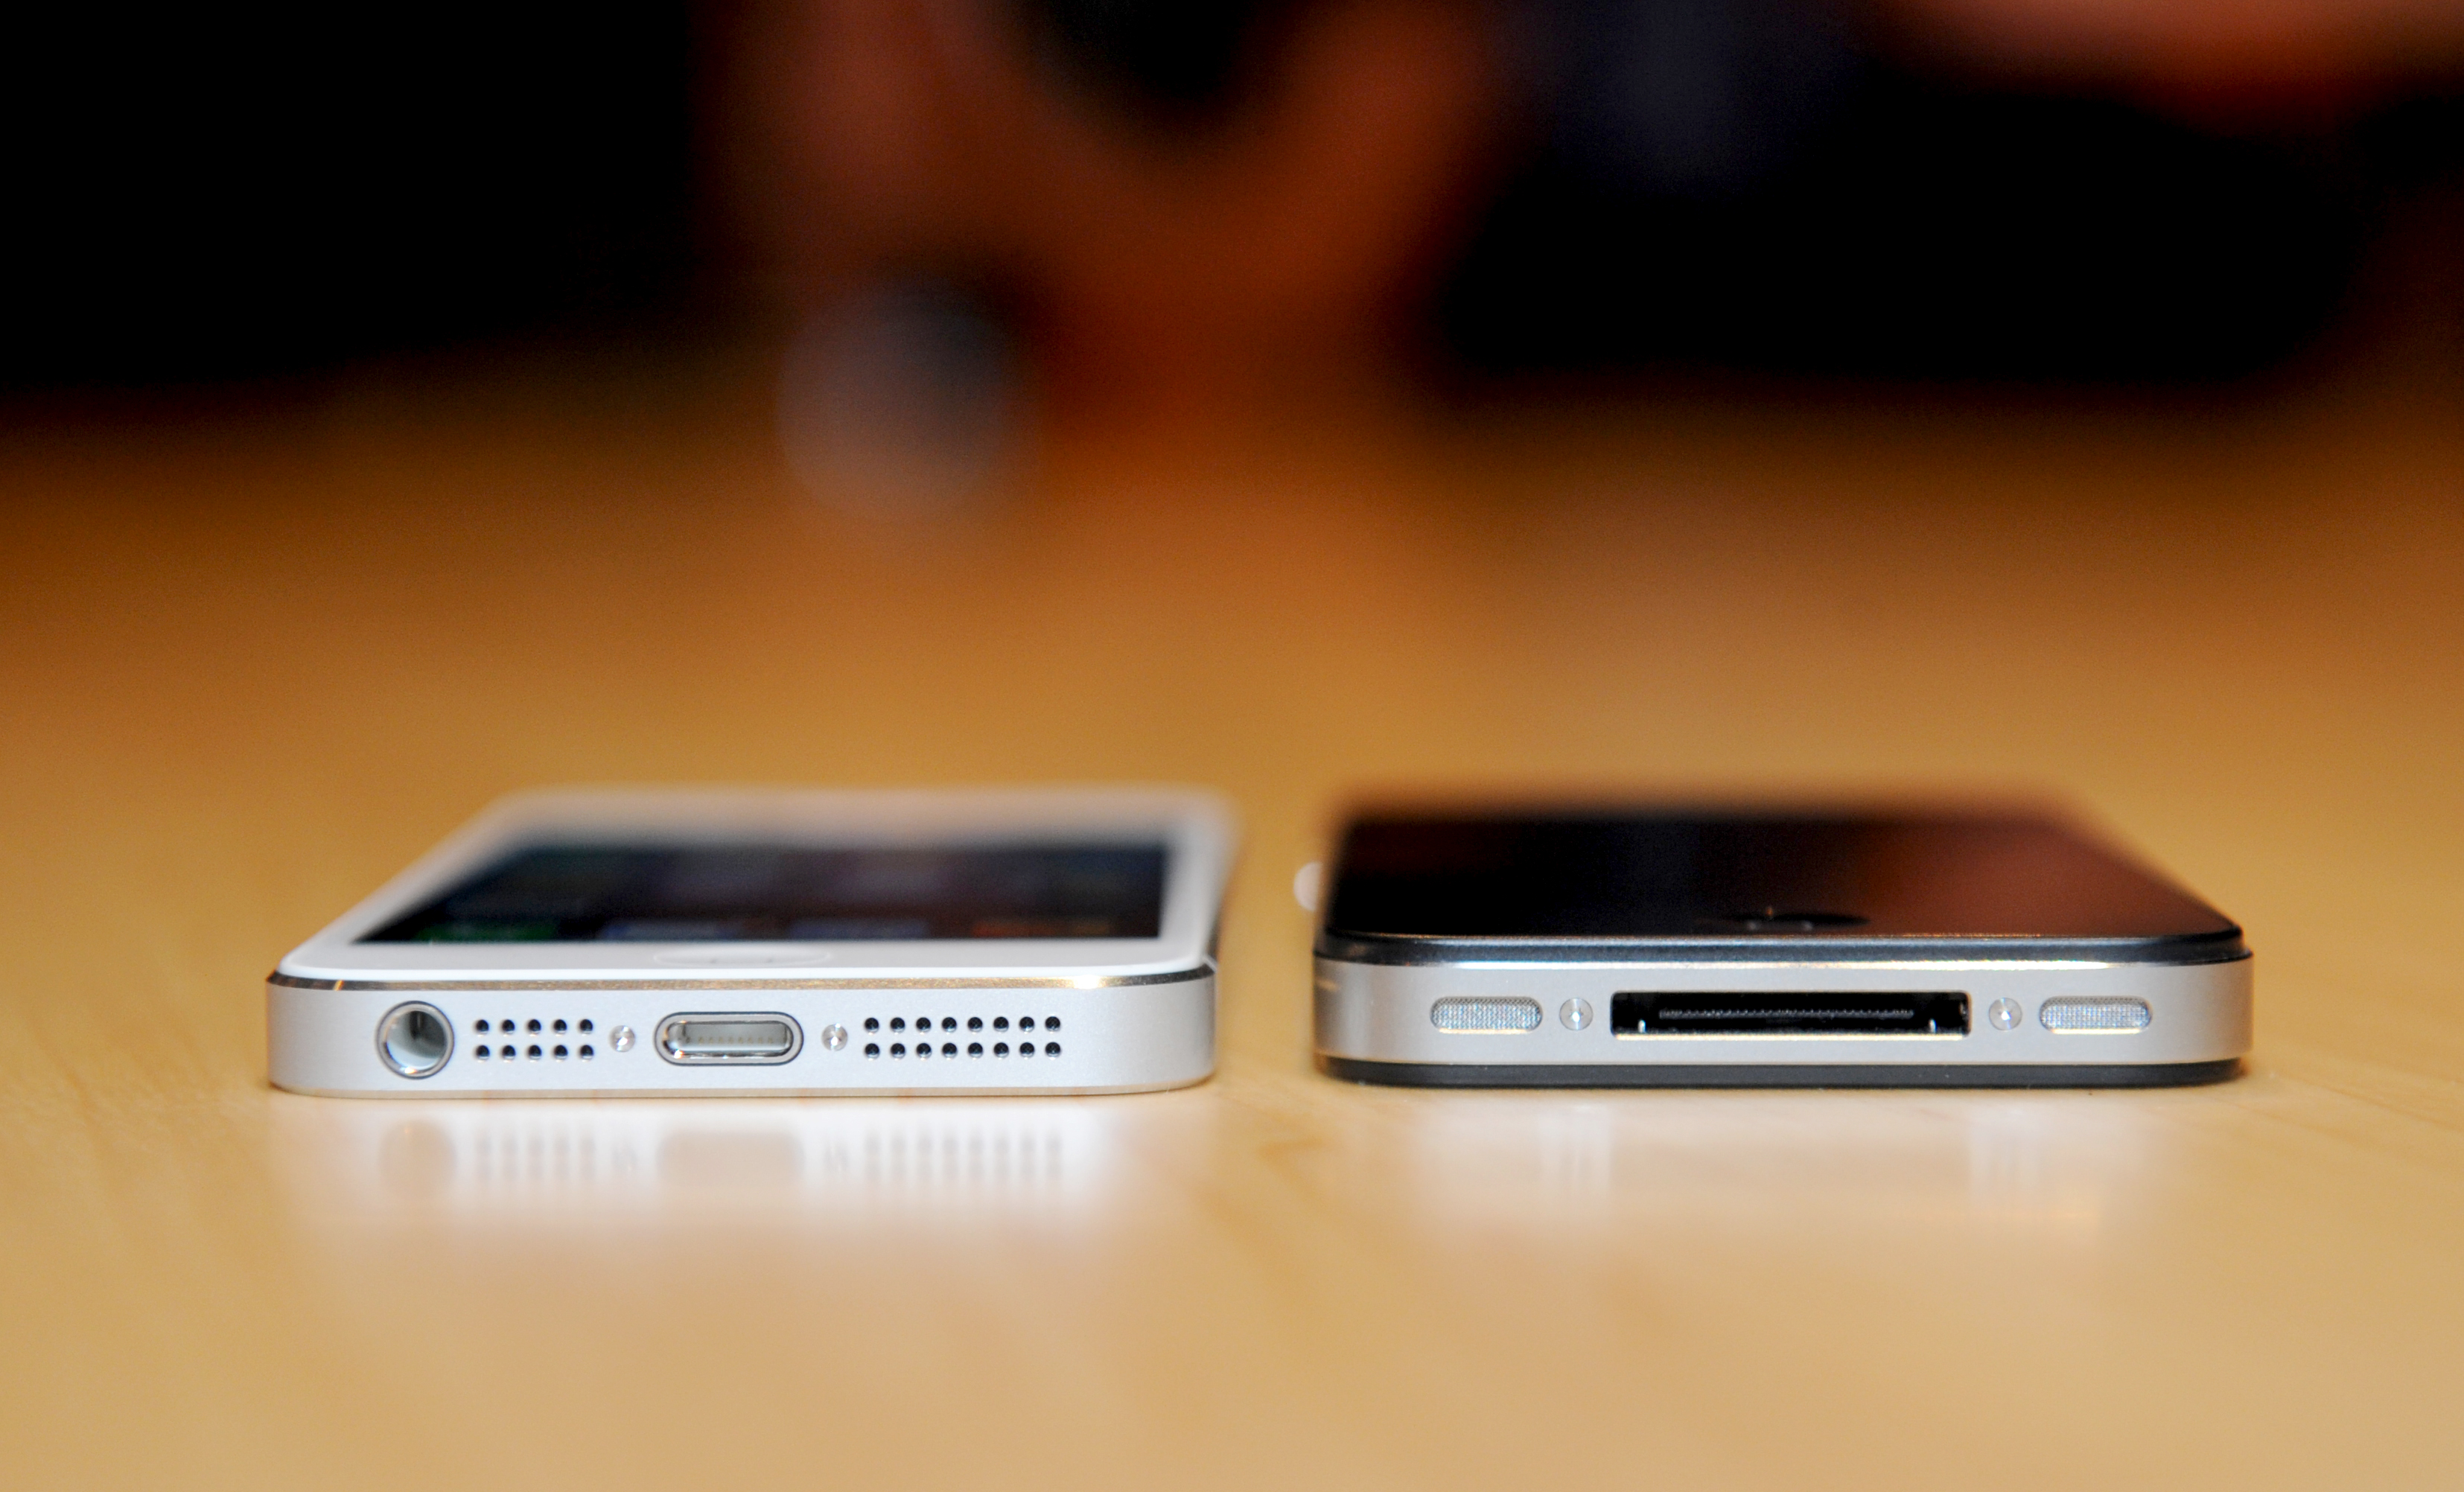 Applie iPhone 5 (left) and 4s (right)